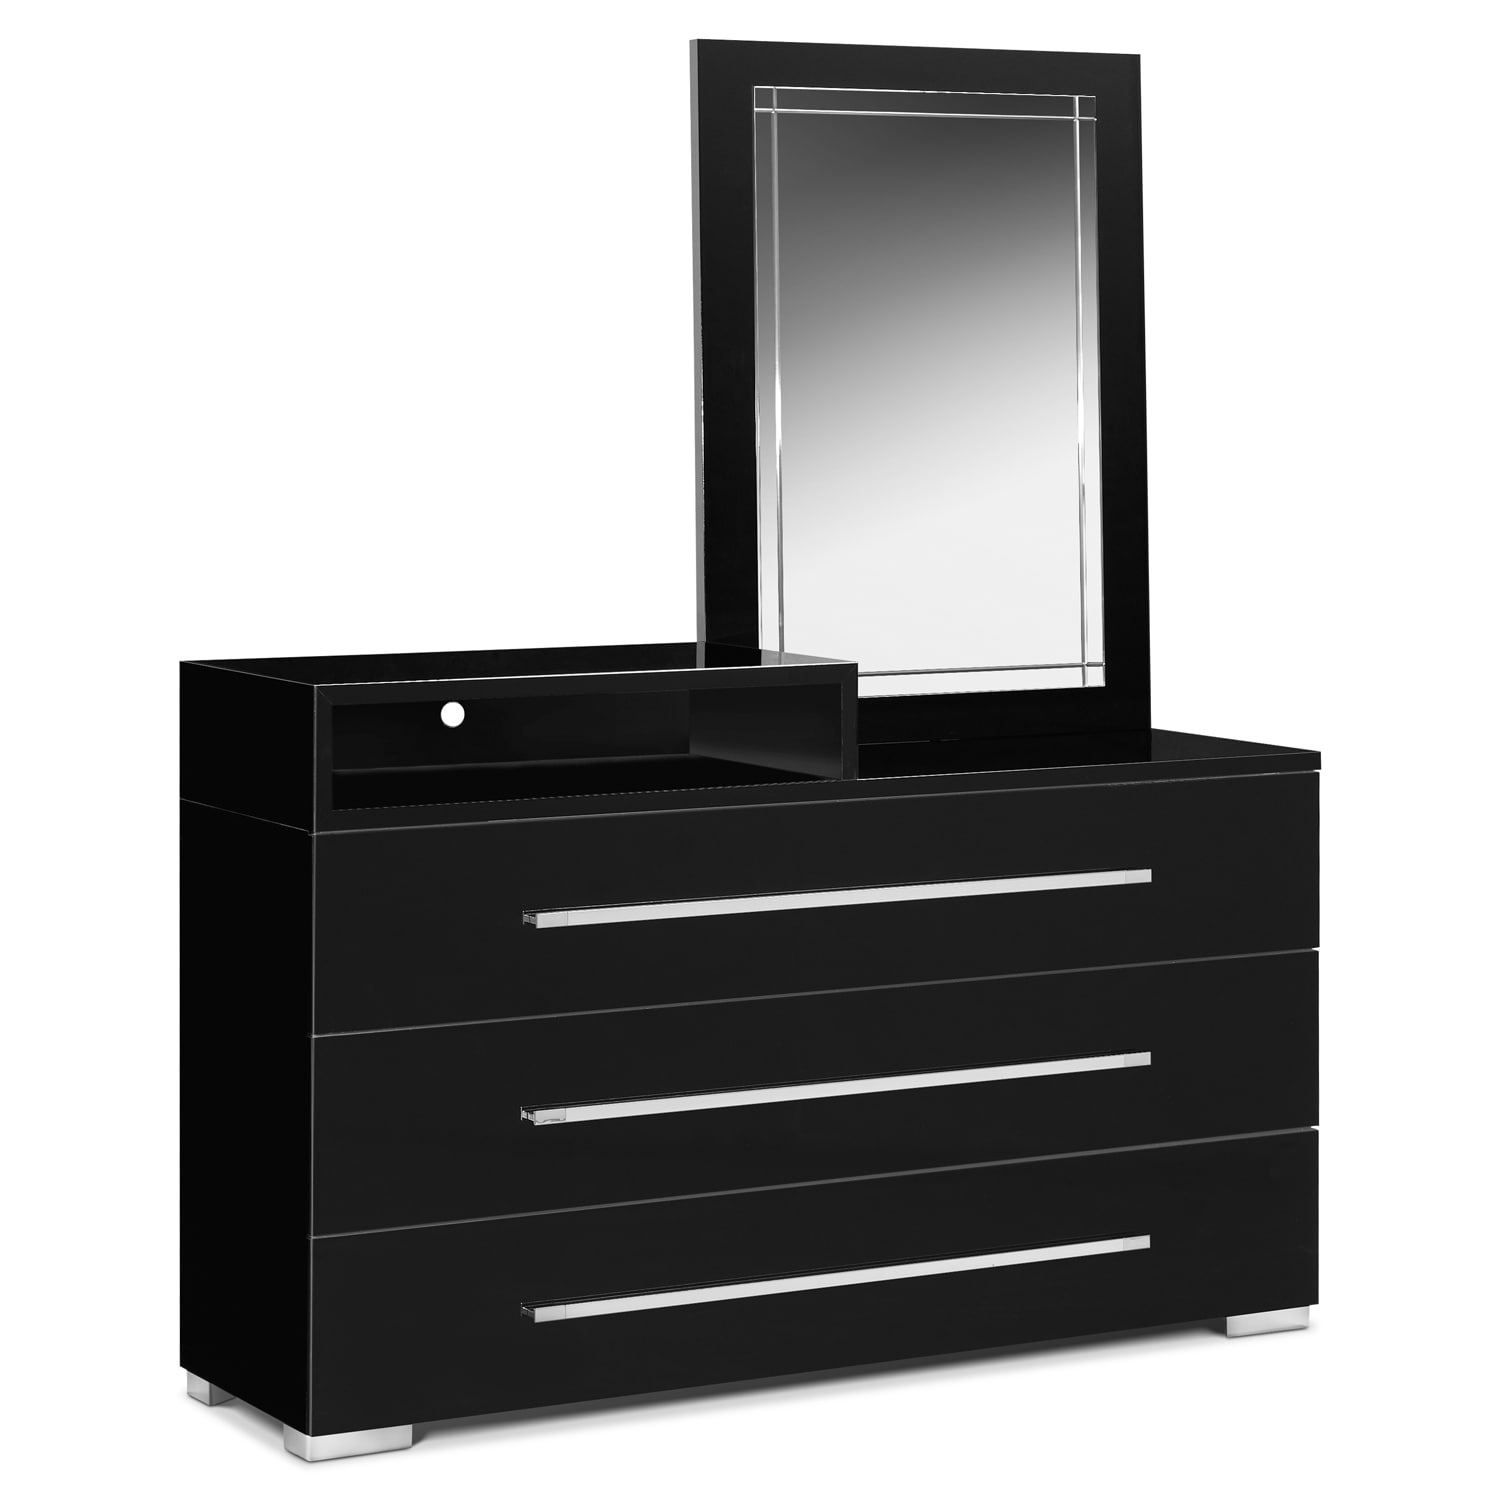 delta res view front dark canton dresser hi cherry black chocolate espresso products children eclipse